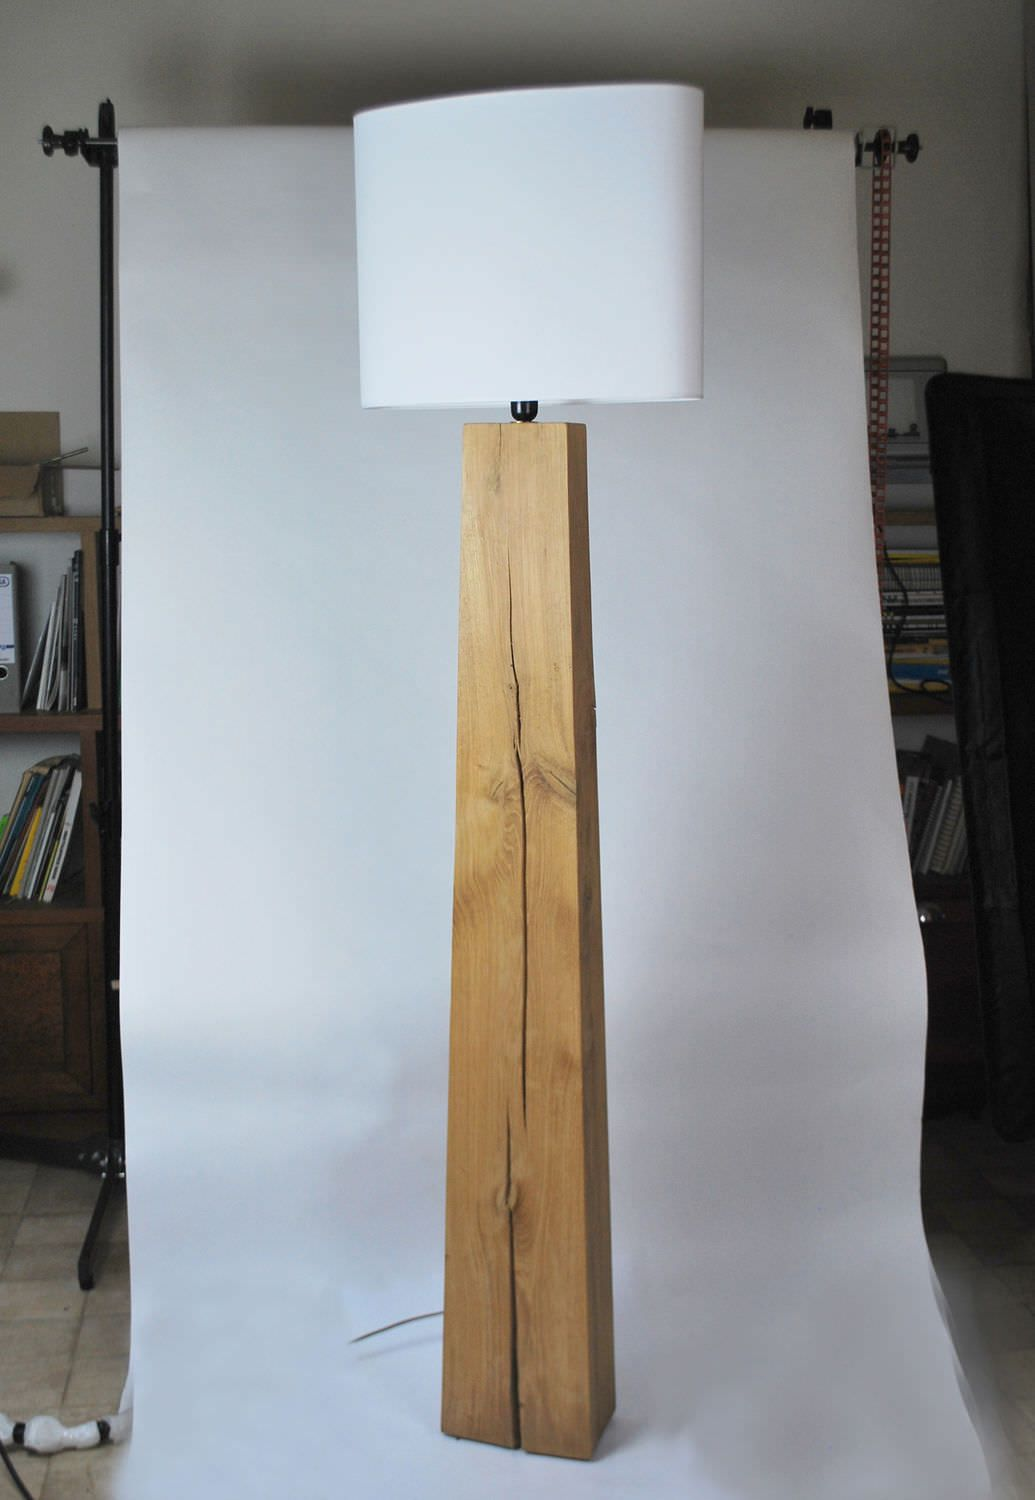 Wood floor lamp with table - Innovative Modern Wooden Leg Floor Standing Lamp With White Cylindrical Lamp Shade Furniture And With Attractive Modern Floor Lamp Design For Interior Smart